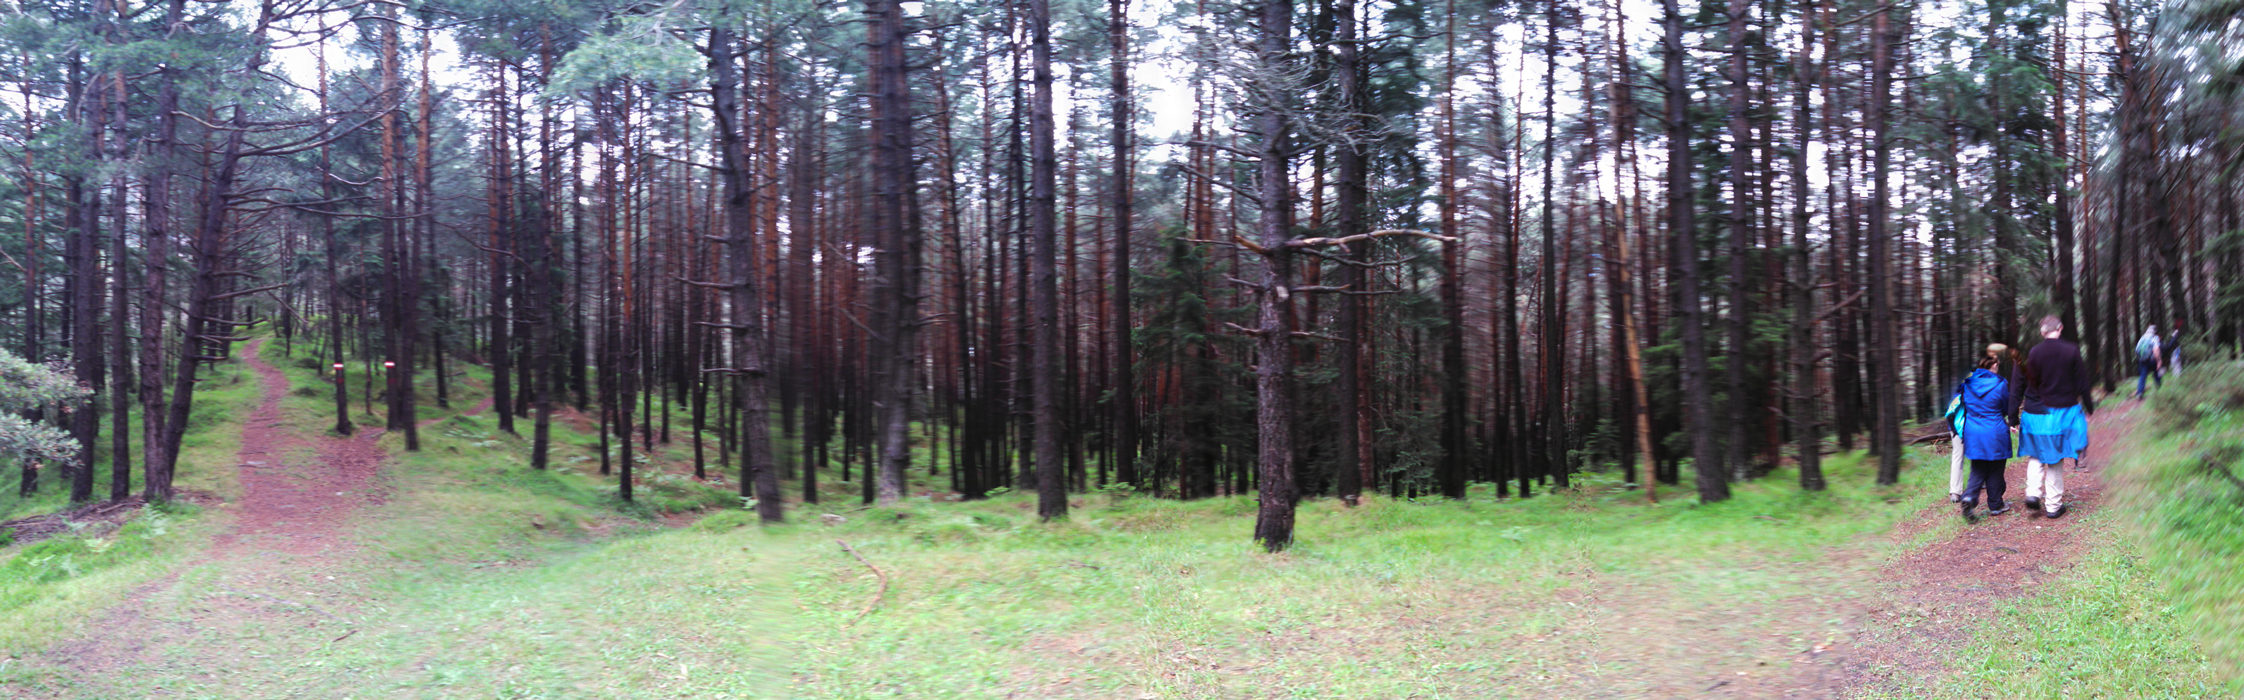 Another view of the woods.